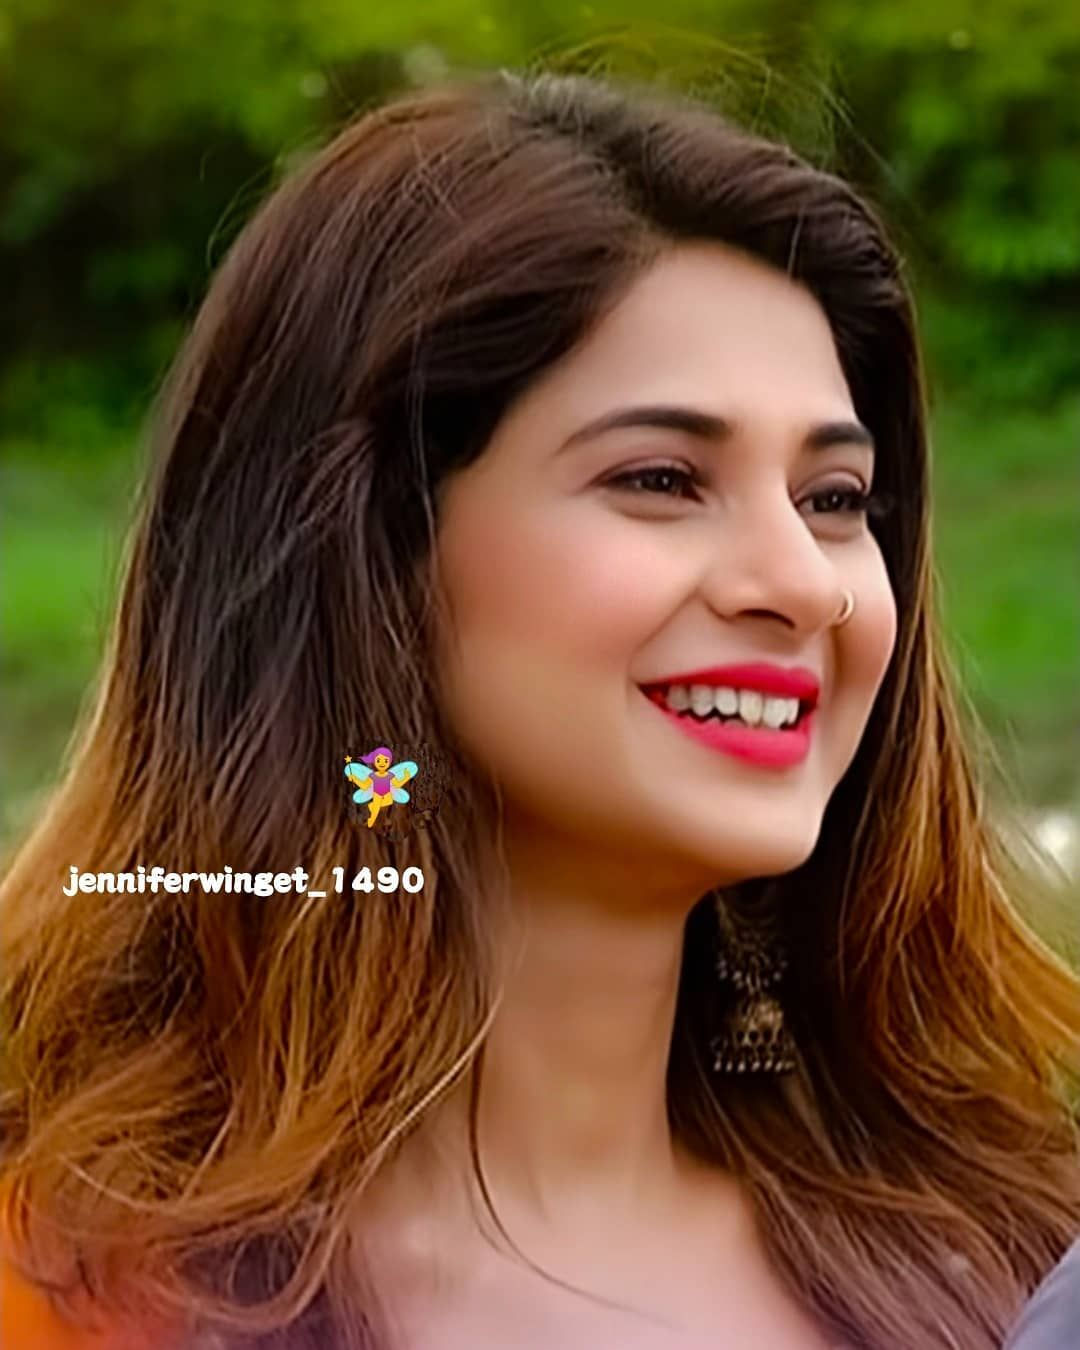 Jenniferwinget1 Zoya Jenniferwinget Bepanah Codem Monicamehra Jennifer Winget Teenage Girl Photography Classy Makeup